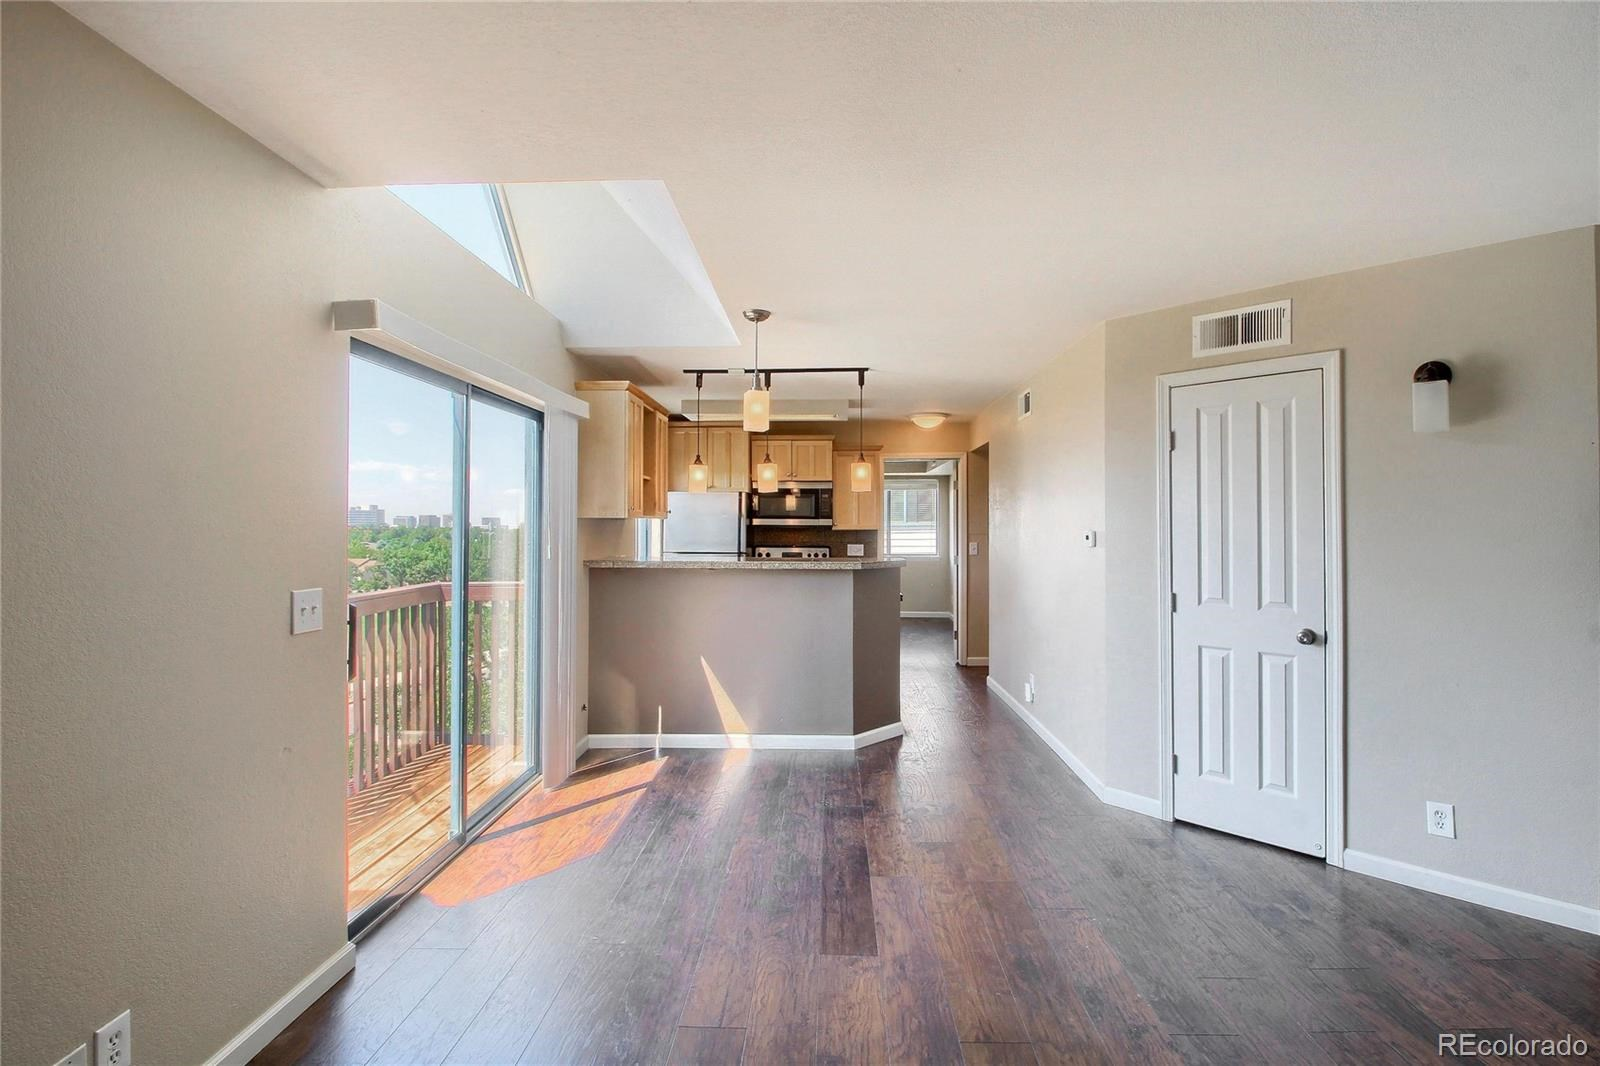 MLS# 5763768 - 13 - 6380 S Boston Street #303, Greenwood Village, CO 80111